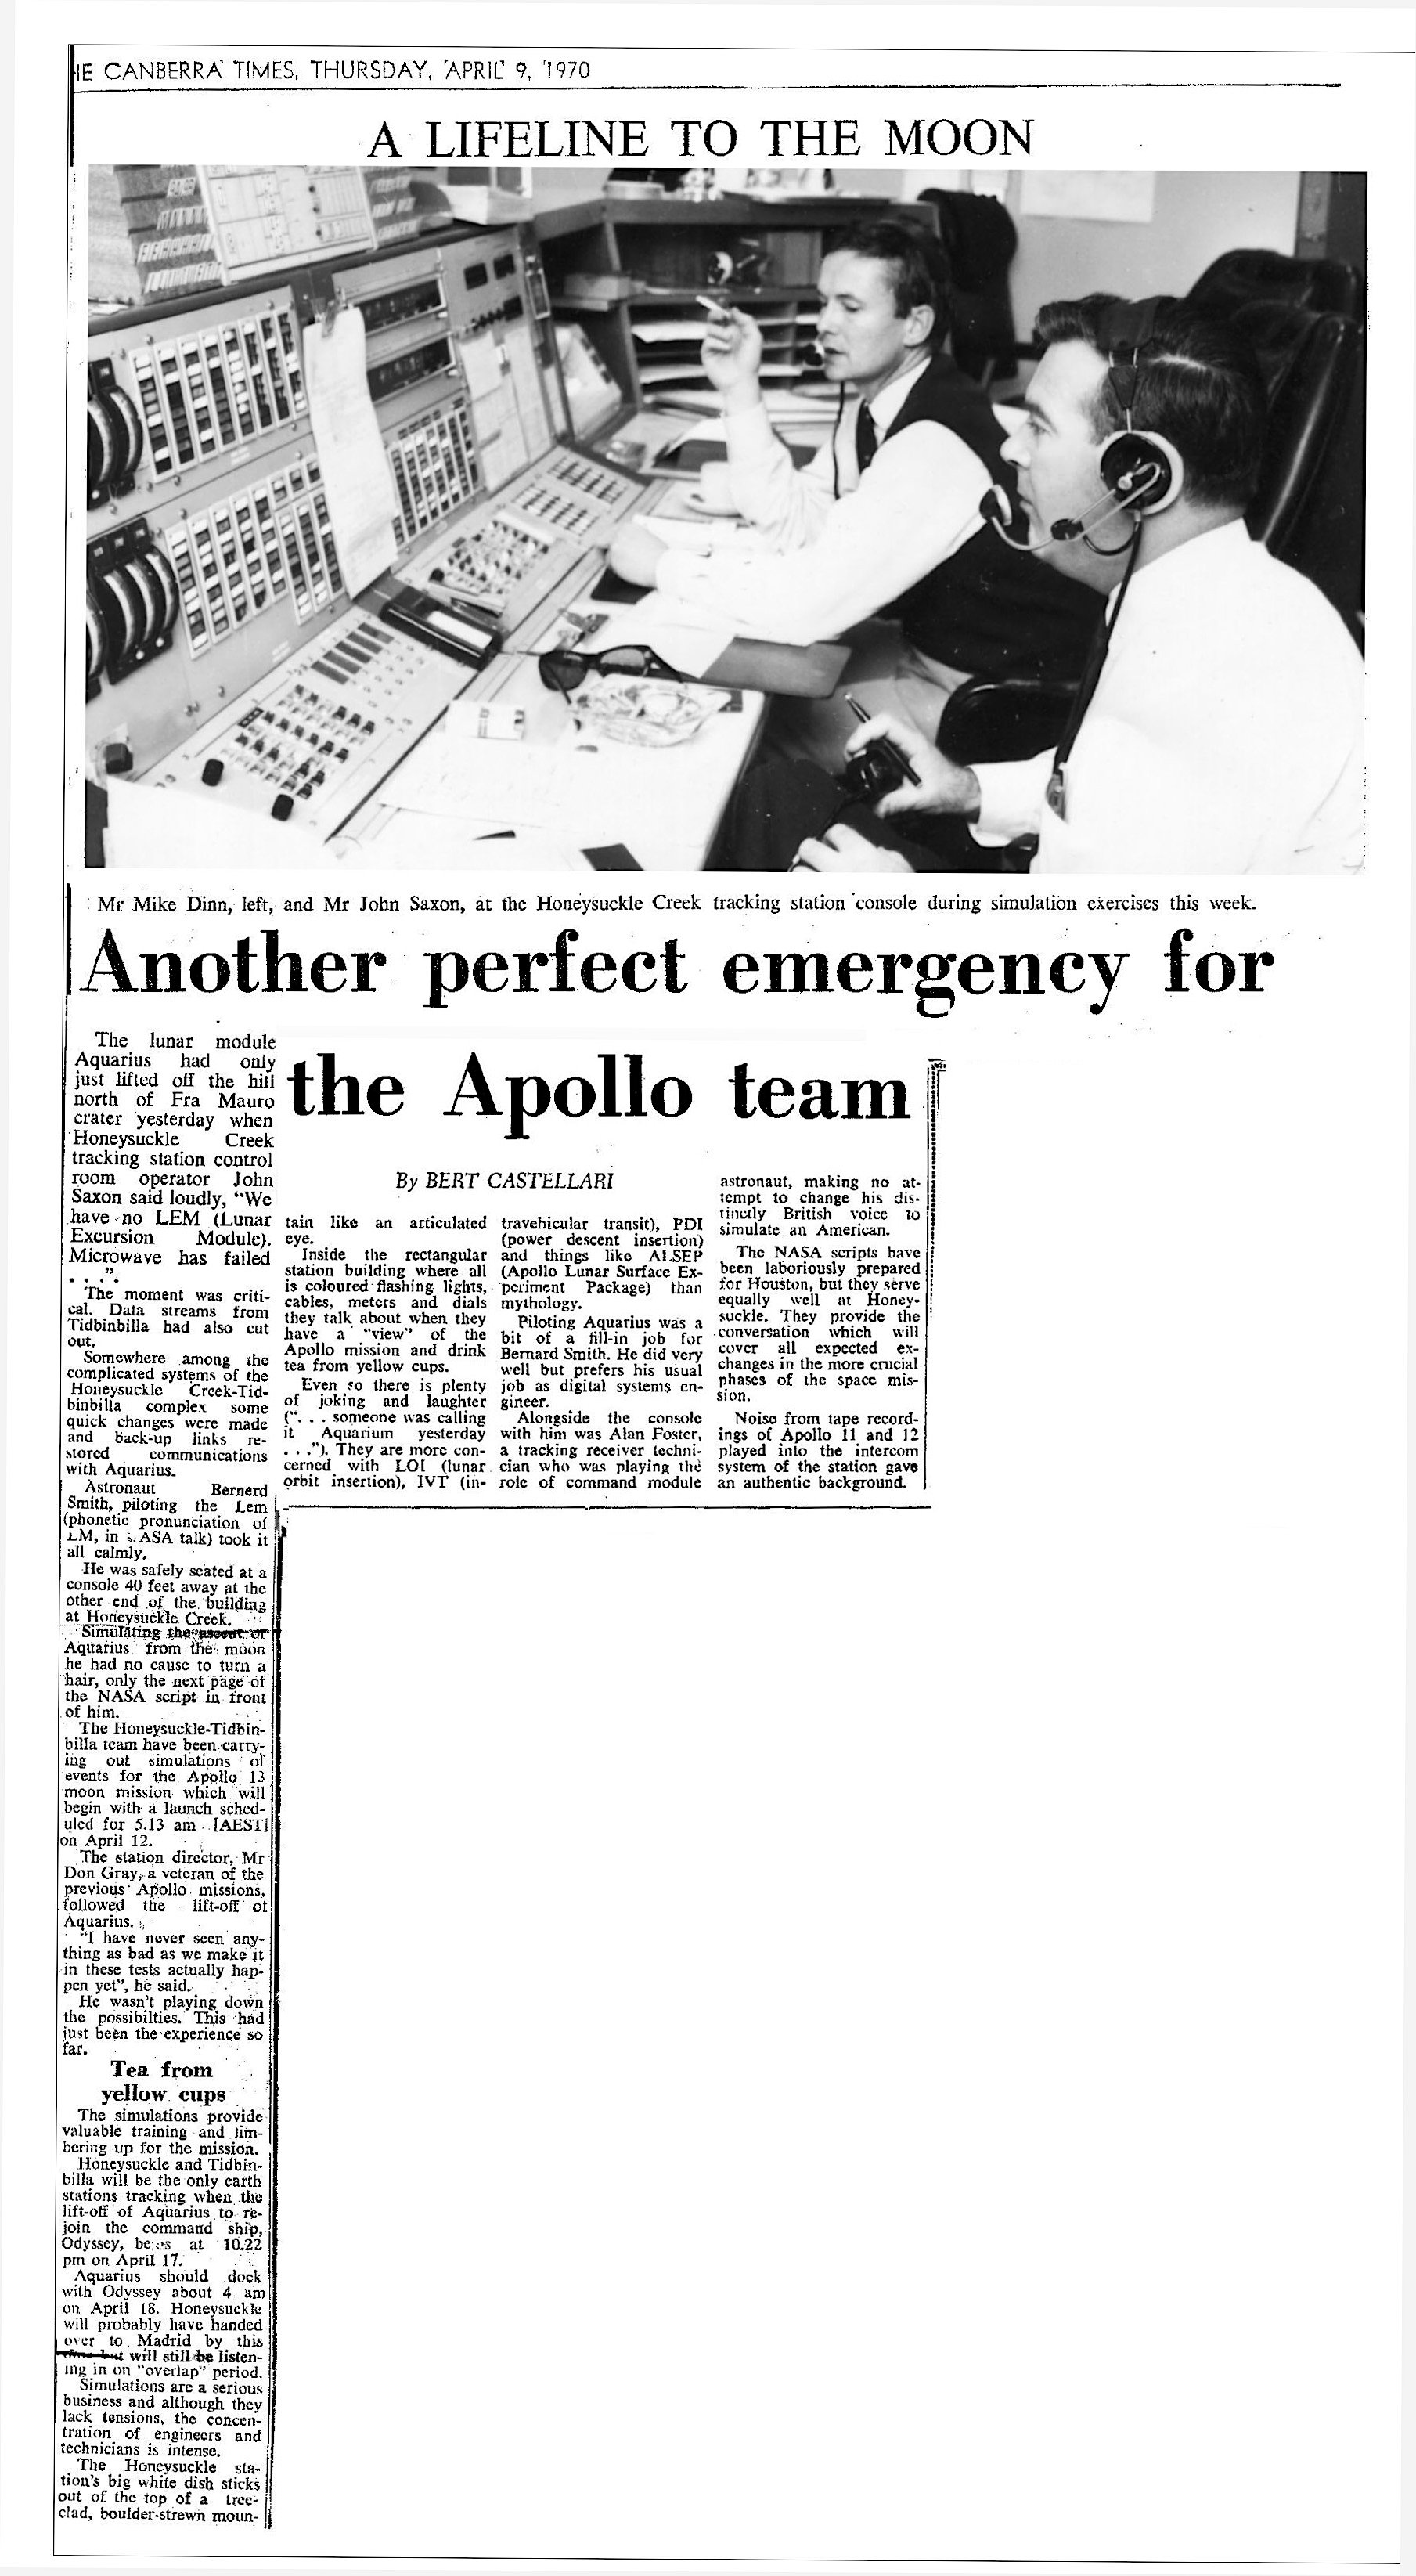 apollo 13 film summary - photo #6